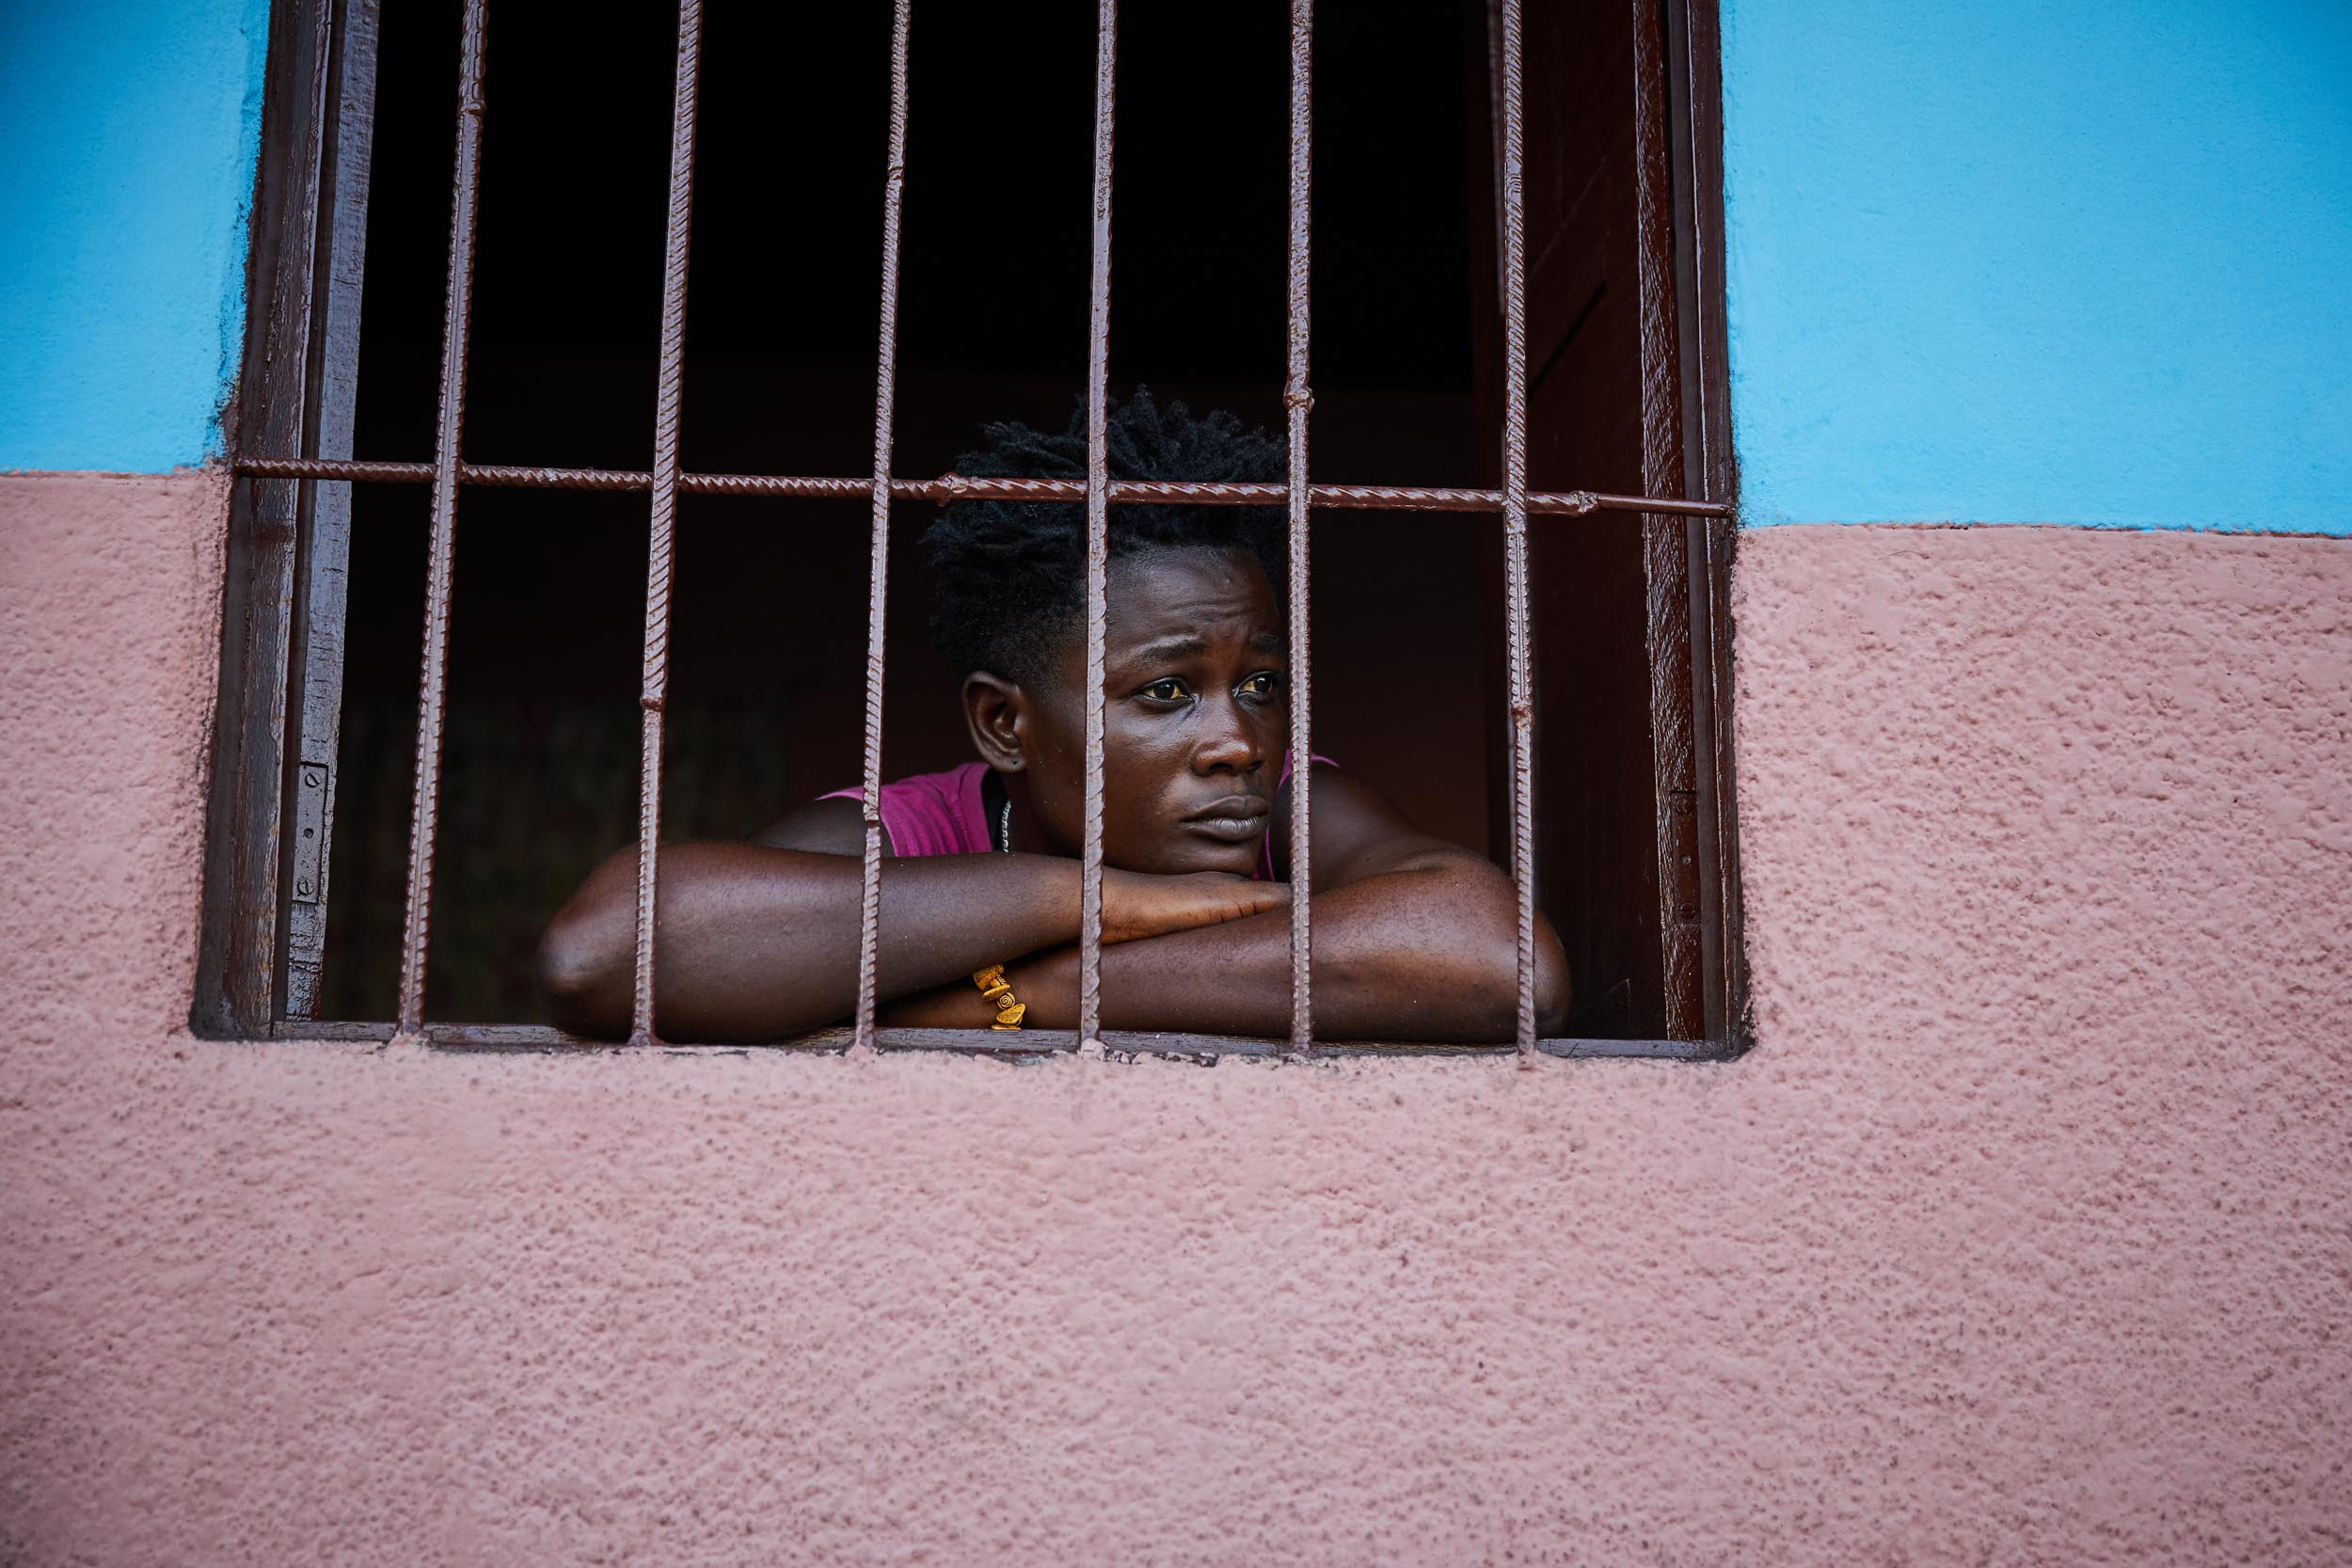 Jorbelle Malewu, one of Kinshasa's female boxers, at home. Jorbelle is the only female middleweight boxer in Kinshasa.